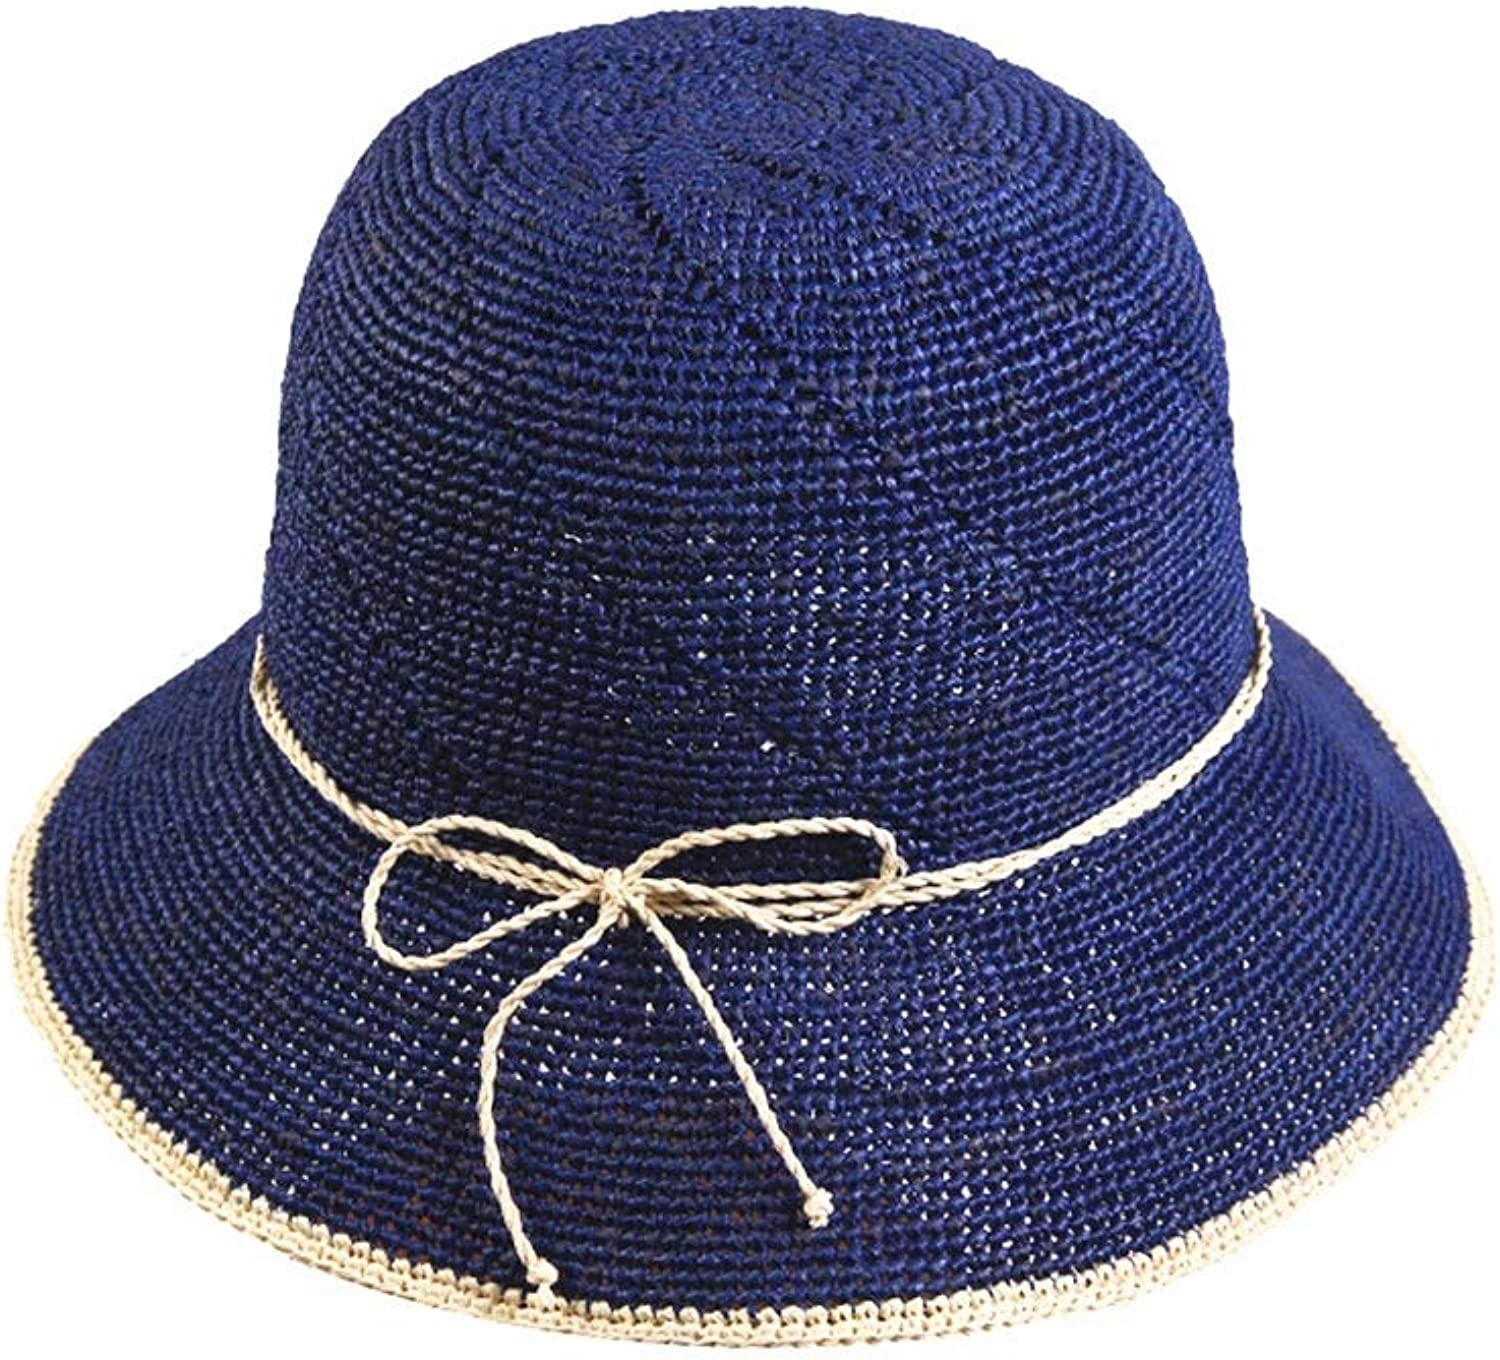 Women's Straw hat Women's Summer Seaside Sun Hat Travel Vacation Straw Hat Outdoor Beach Hat Straw (color   bluee)